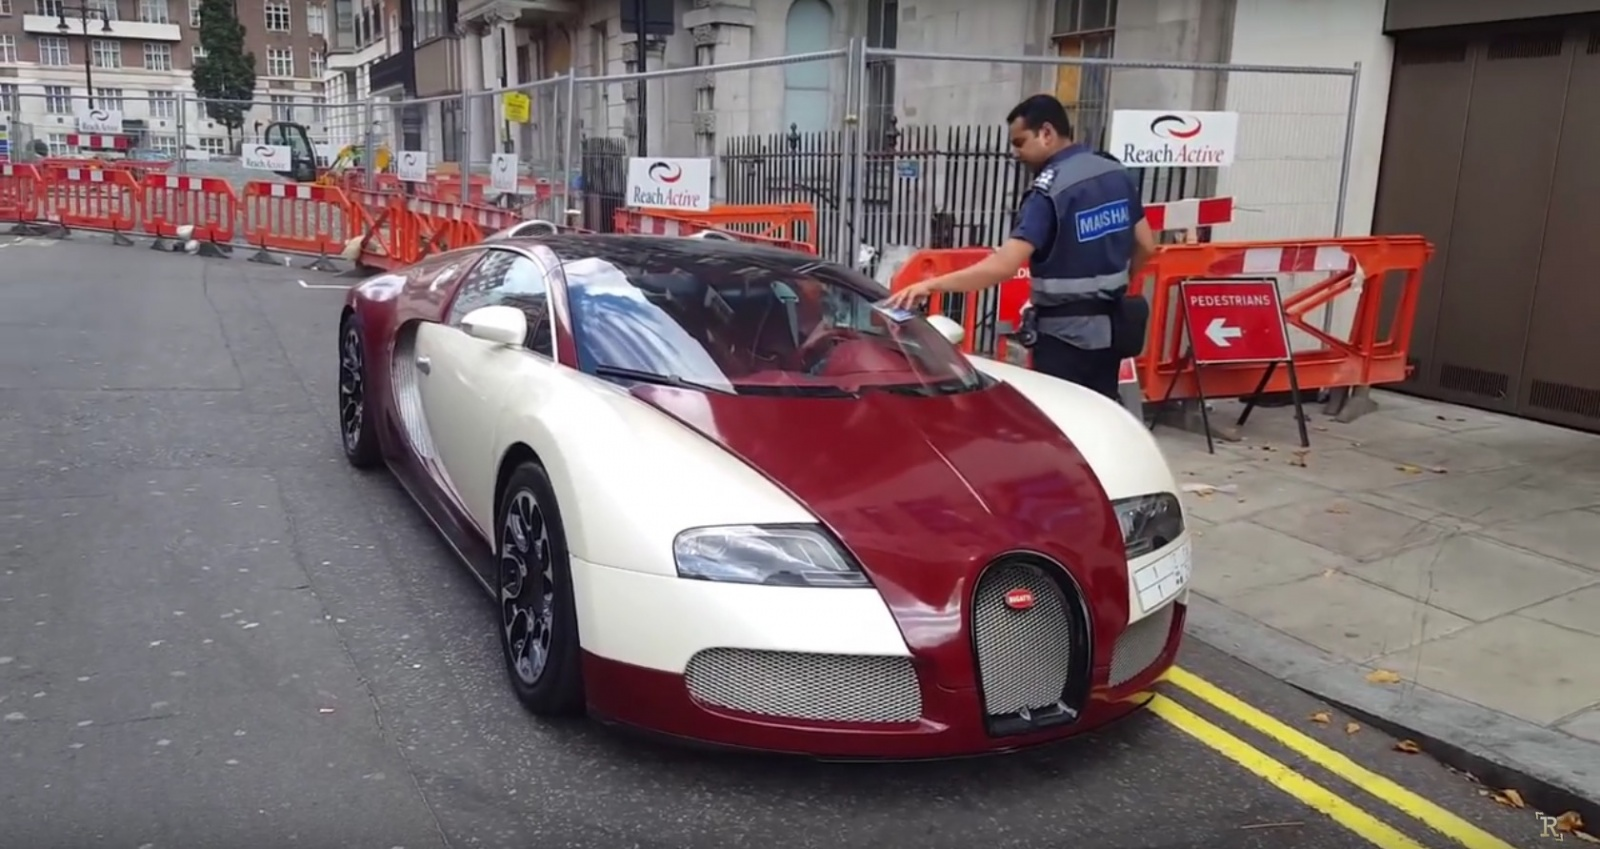 bugatti-veyron-gets-parking-ticket-in-london-video-99153_1